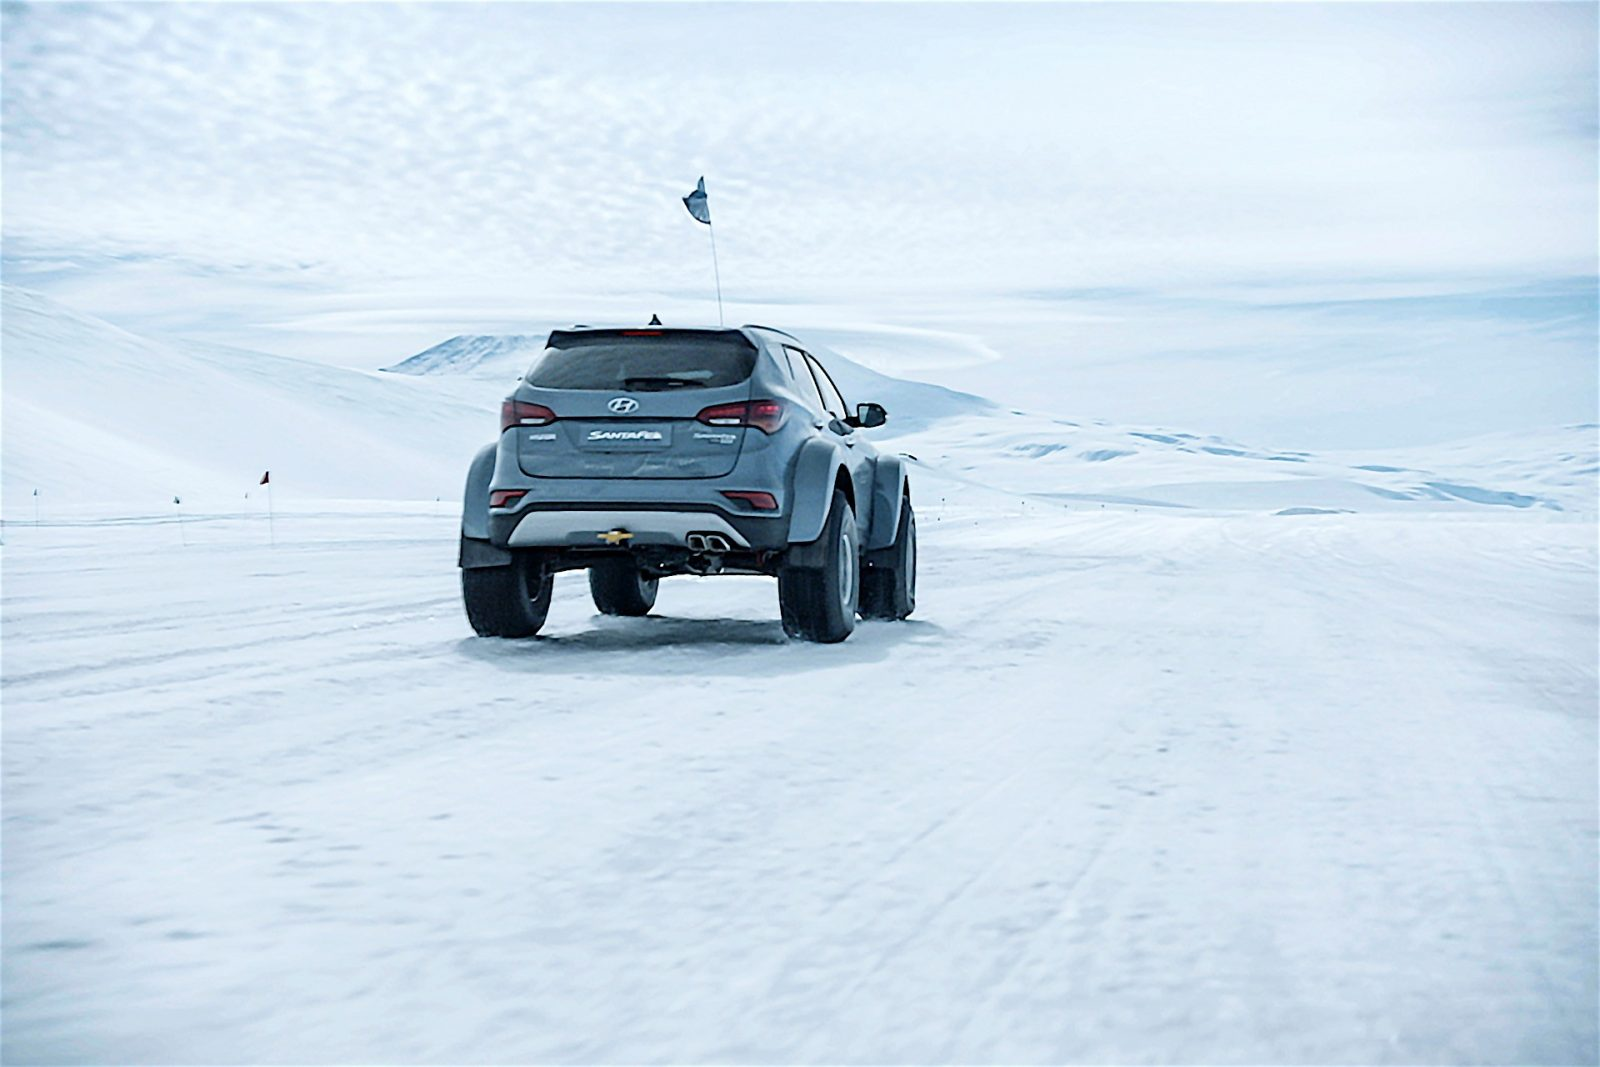 hyundai-santa-fe-conquers-the-antarctic-driven-by-great-grandson-of-sir-ernest-s_2